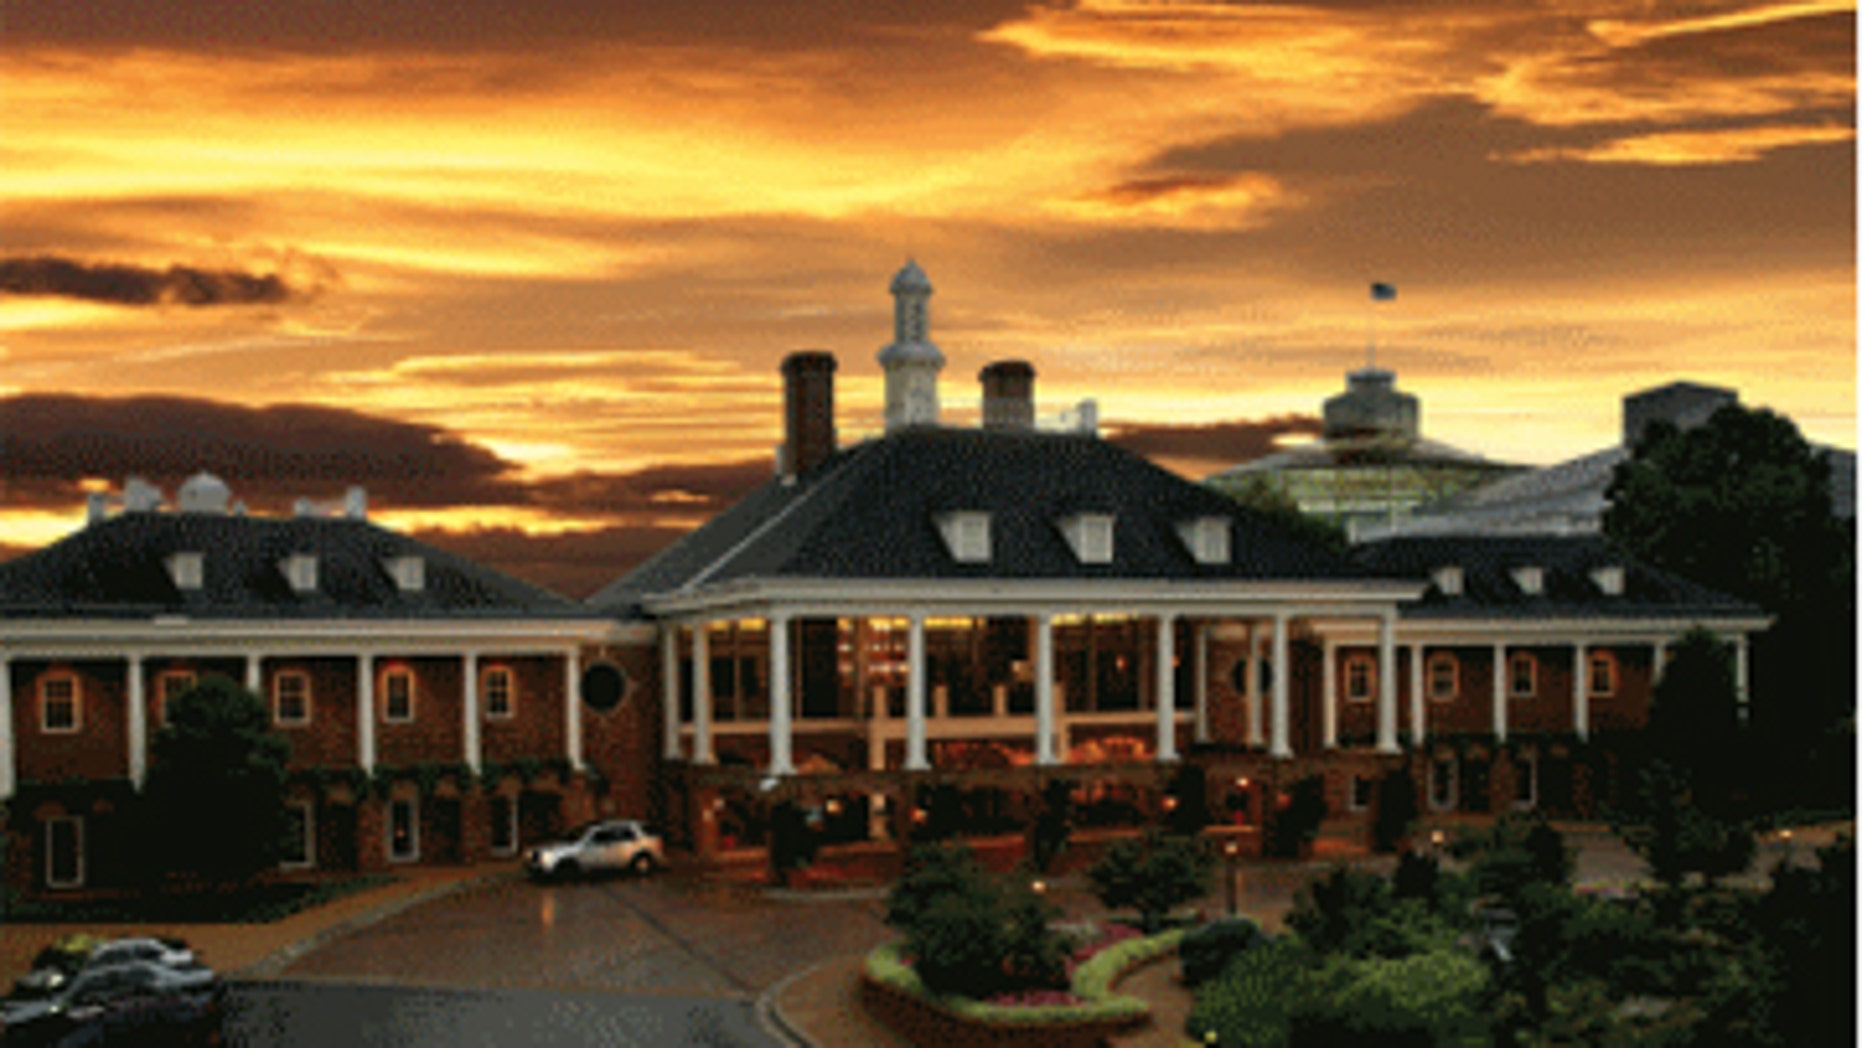 That National Tea Party Convention is being held at the Grand Ole Opry in Nashville from Feb. 4-6. (nationalteapartyconvention.com)